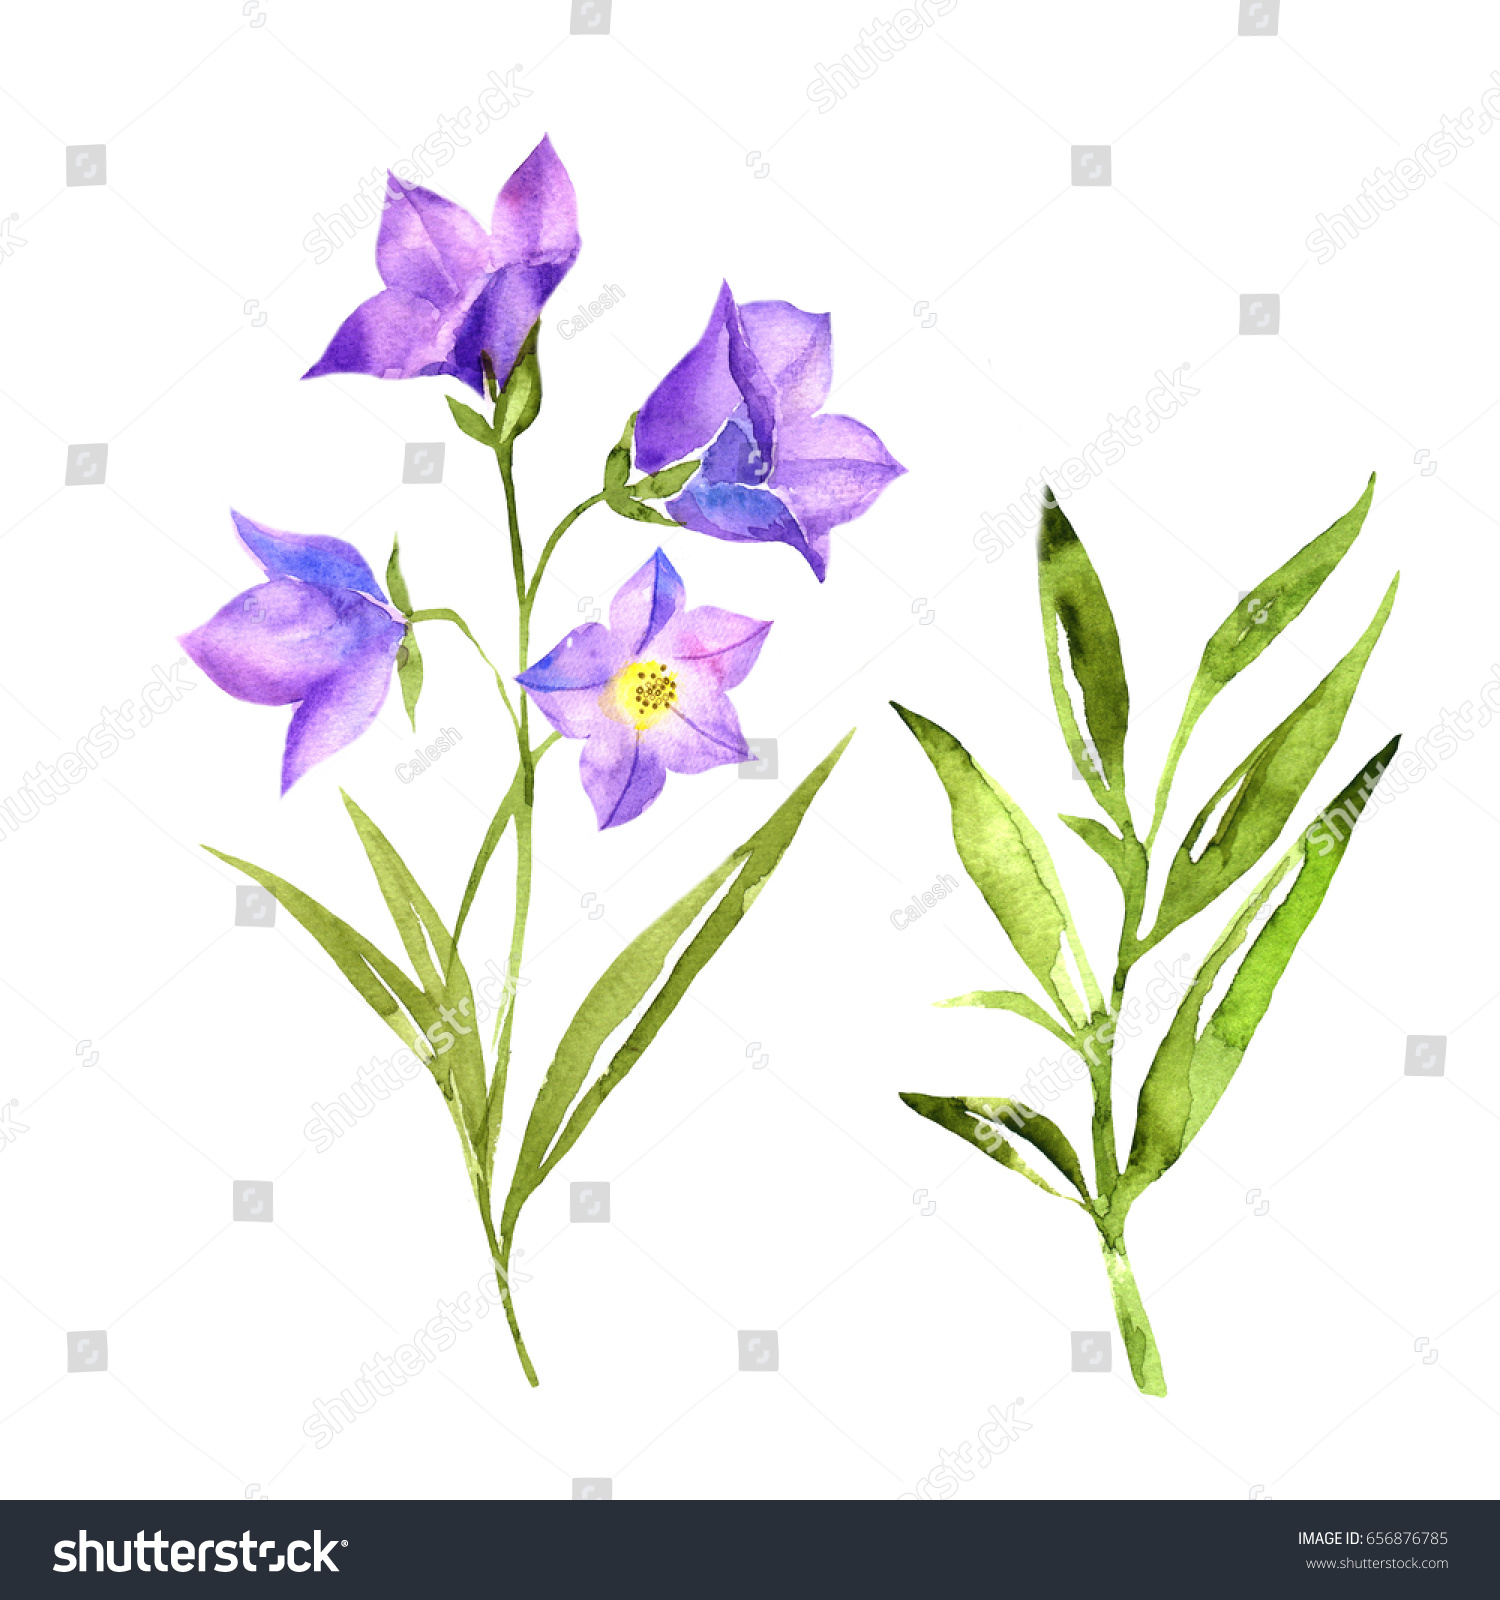 Hand Drawn Bluebells Flowers Grass Watercolor Stock Illustration